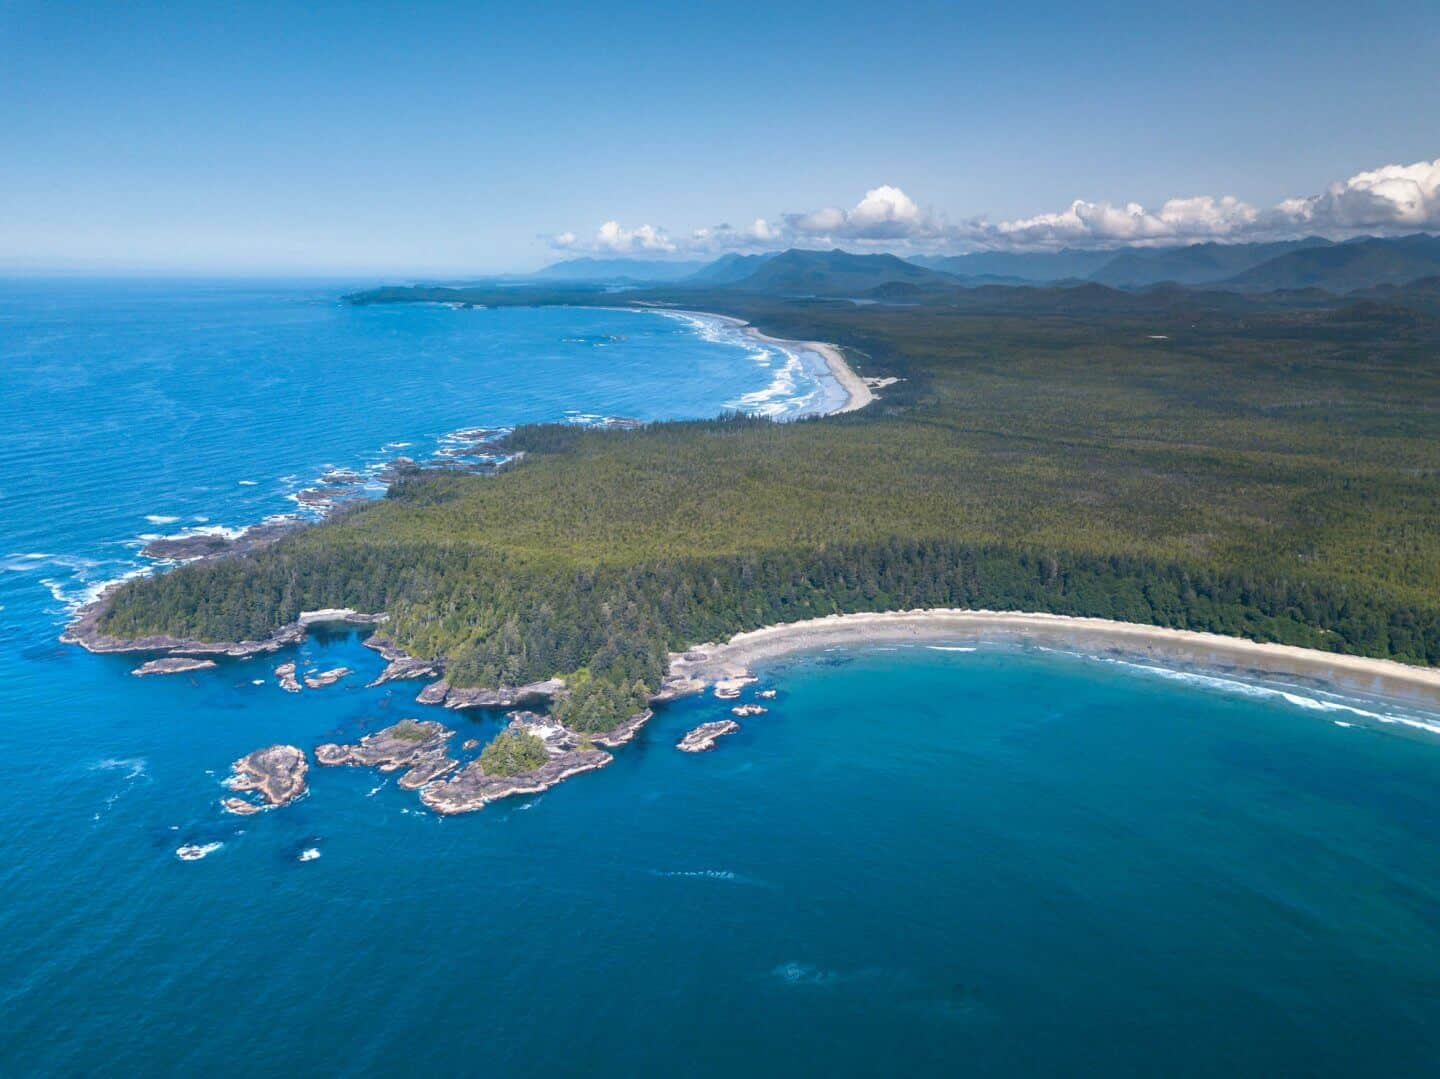 An aerial view of Long Beach and Combers Beach meeting outside of Tofino.